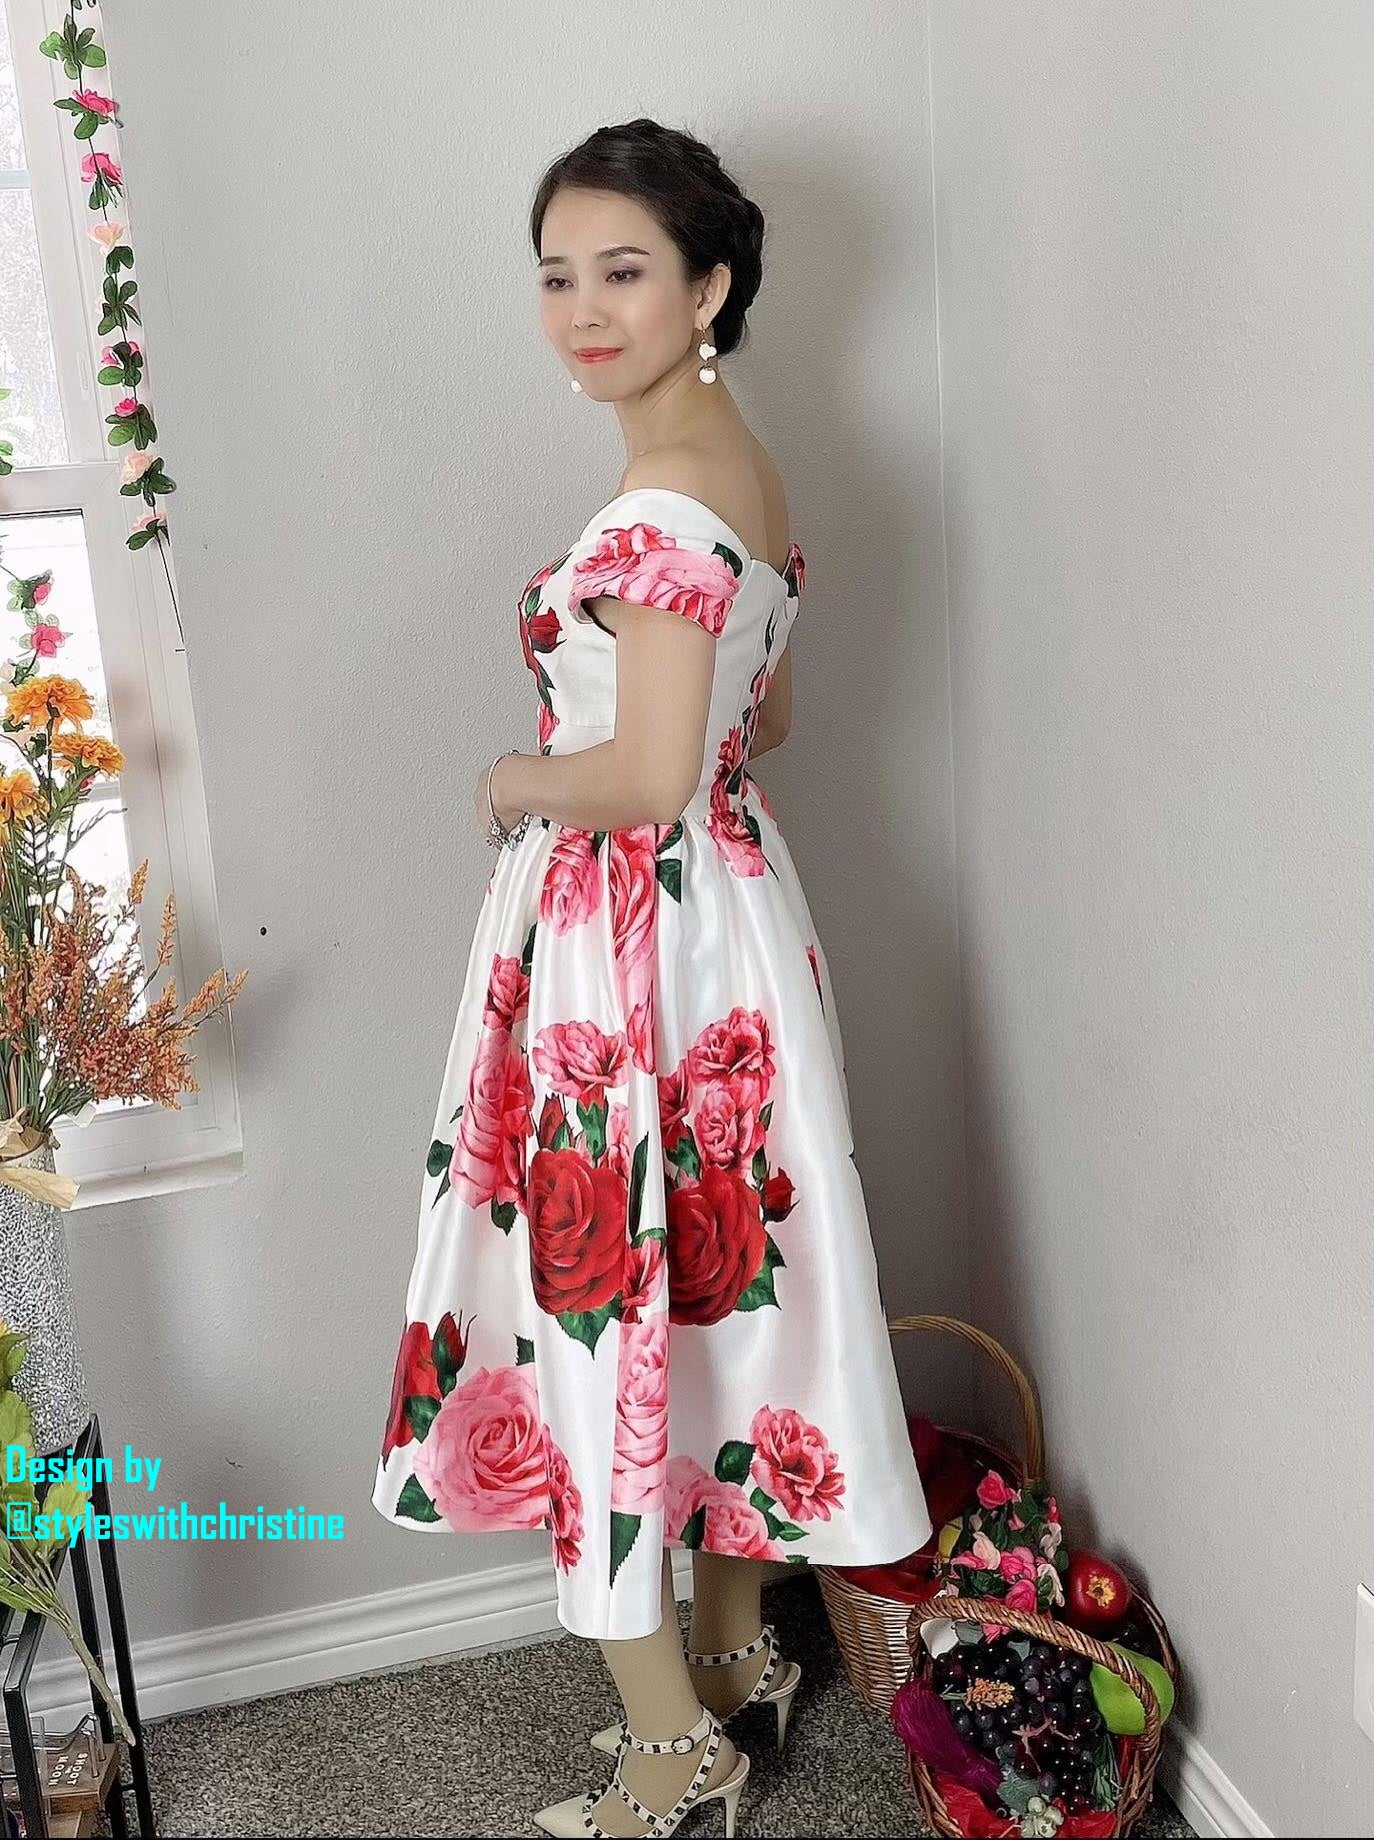 Diana Dress in Roses Taffeta - Shop women style vintage, Audrey Hepburn jackets online -Christine